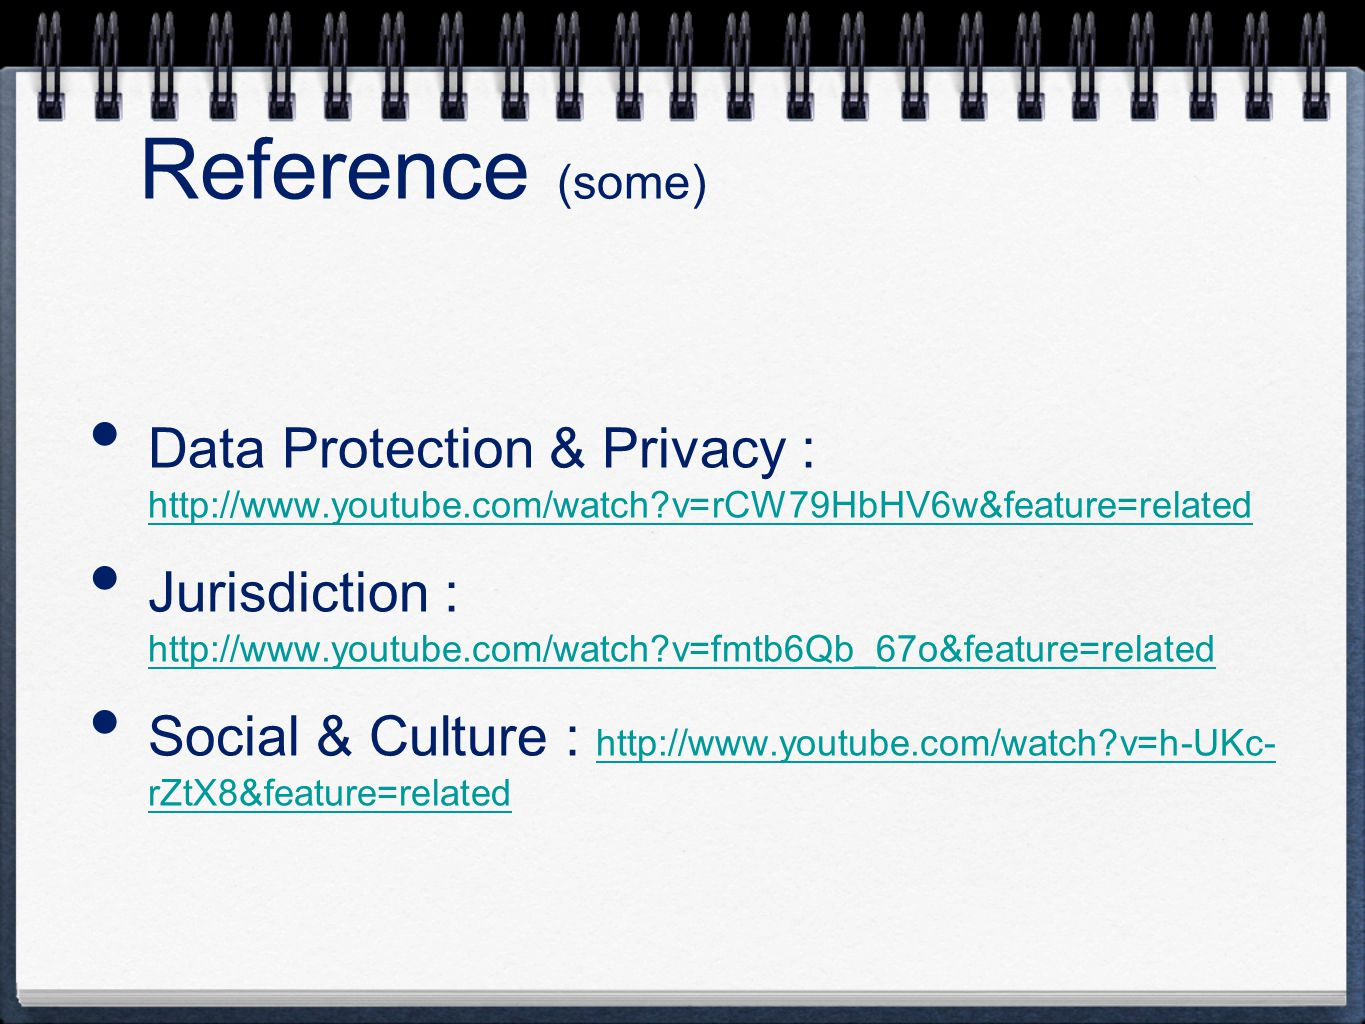 Data Protection & Privacy : http://www.youtube.com/watch?v=rCW79HbHV6w&feature=related http://www.youtube.com/watch?v=rCW79HbHV6w&feature=related Jurisdiction : http://www.youtube.com/watch?v=fmtb6Qb_67o&feature=related http://www.youtube.com/watch?v=fmtb6Qb_67o&feature=related Social & Culture : http://www.youtube.com/watch?v=h-UKc- rZtX8&feature=related http://www.youtube.com/watch?v=h-UKc- rZtX8&feature=related Reference (some)